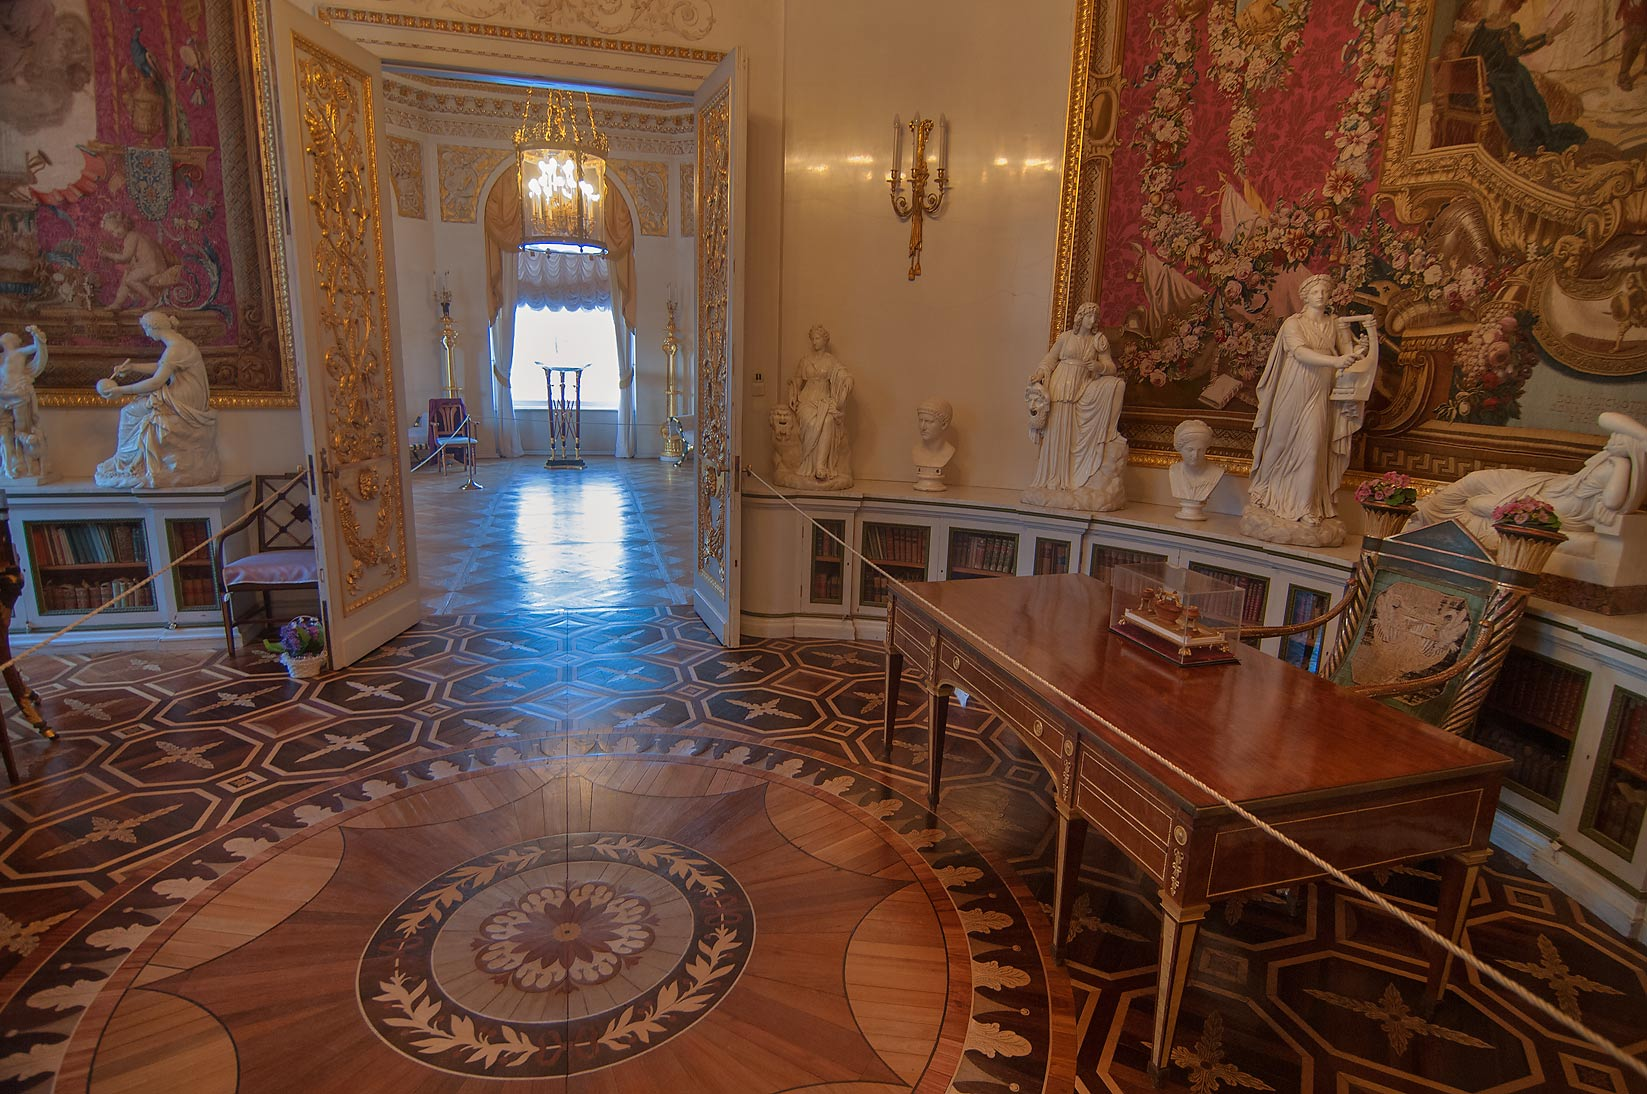 Parquet floor and sculptures in Pavlovsky Palace...a suburb of St.Petersburg, Russia